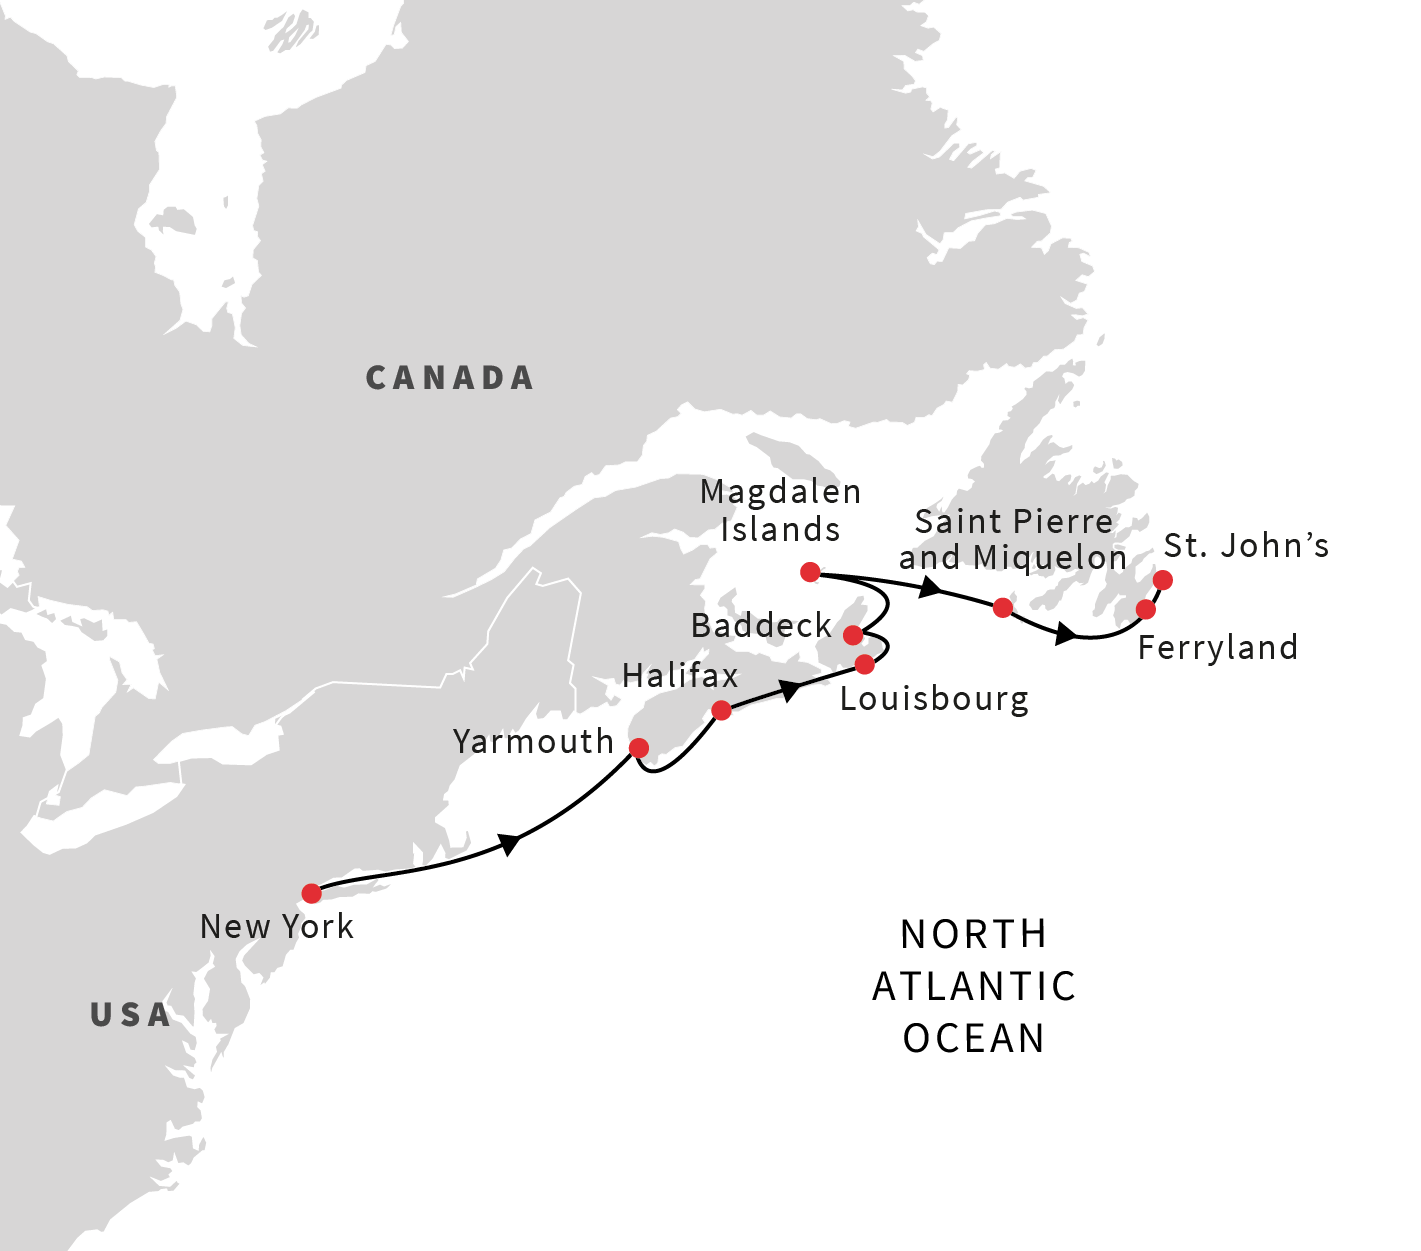 Cruise from New York USA to St Johns Canada Spring 2019